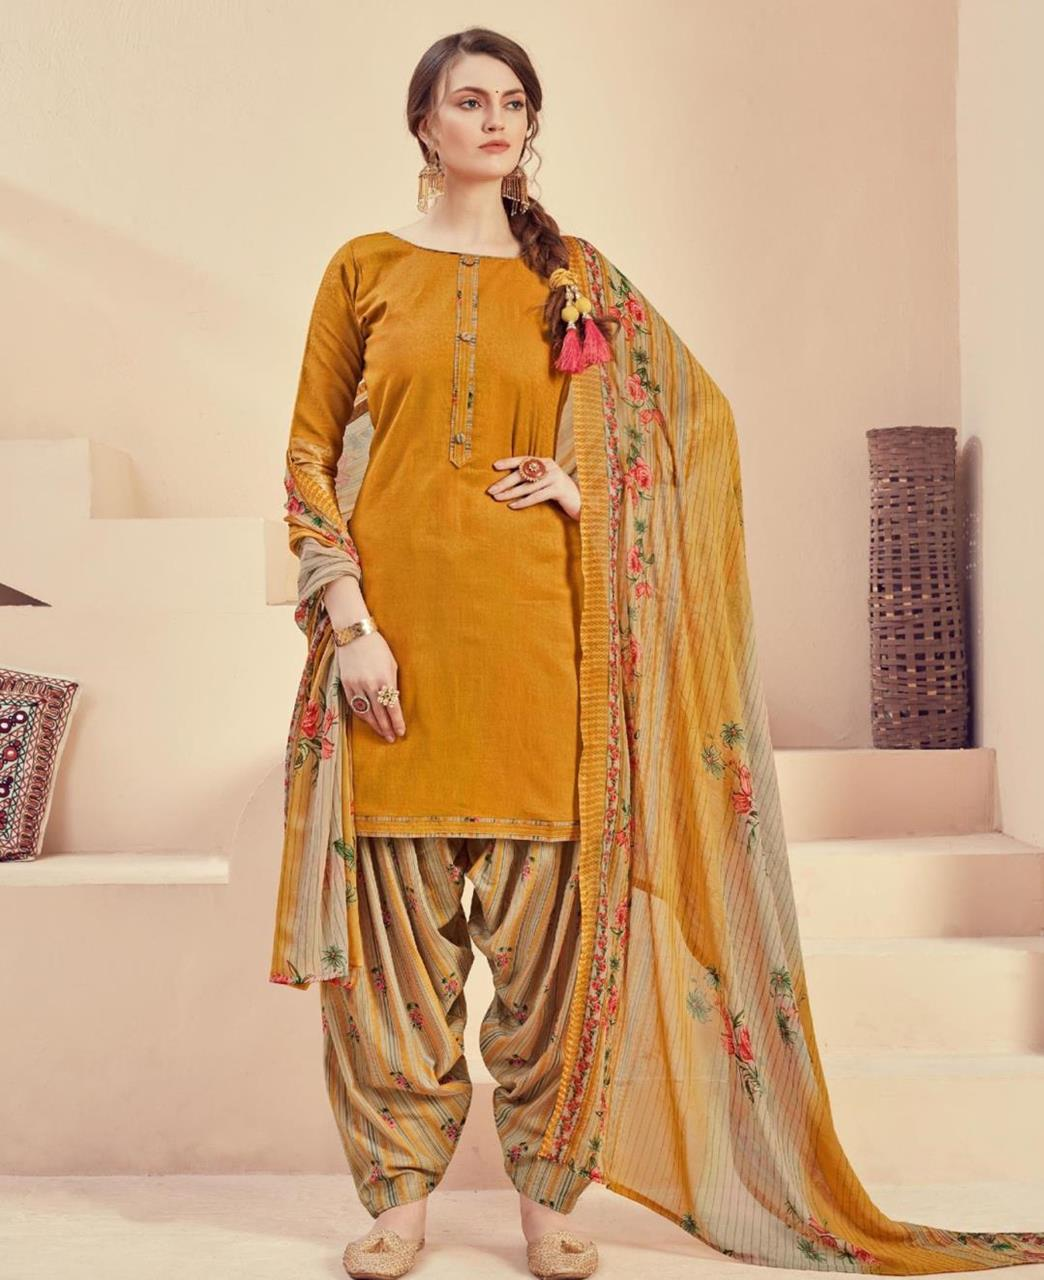 Printed Cotton Patiyala Suit Salwar in Musterd